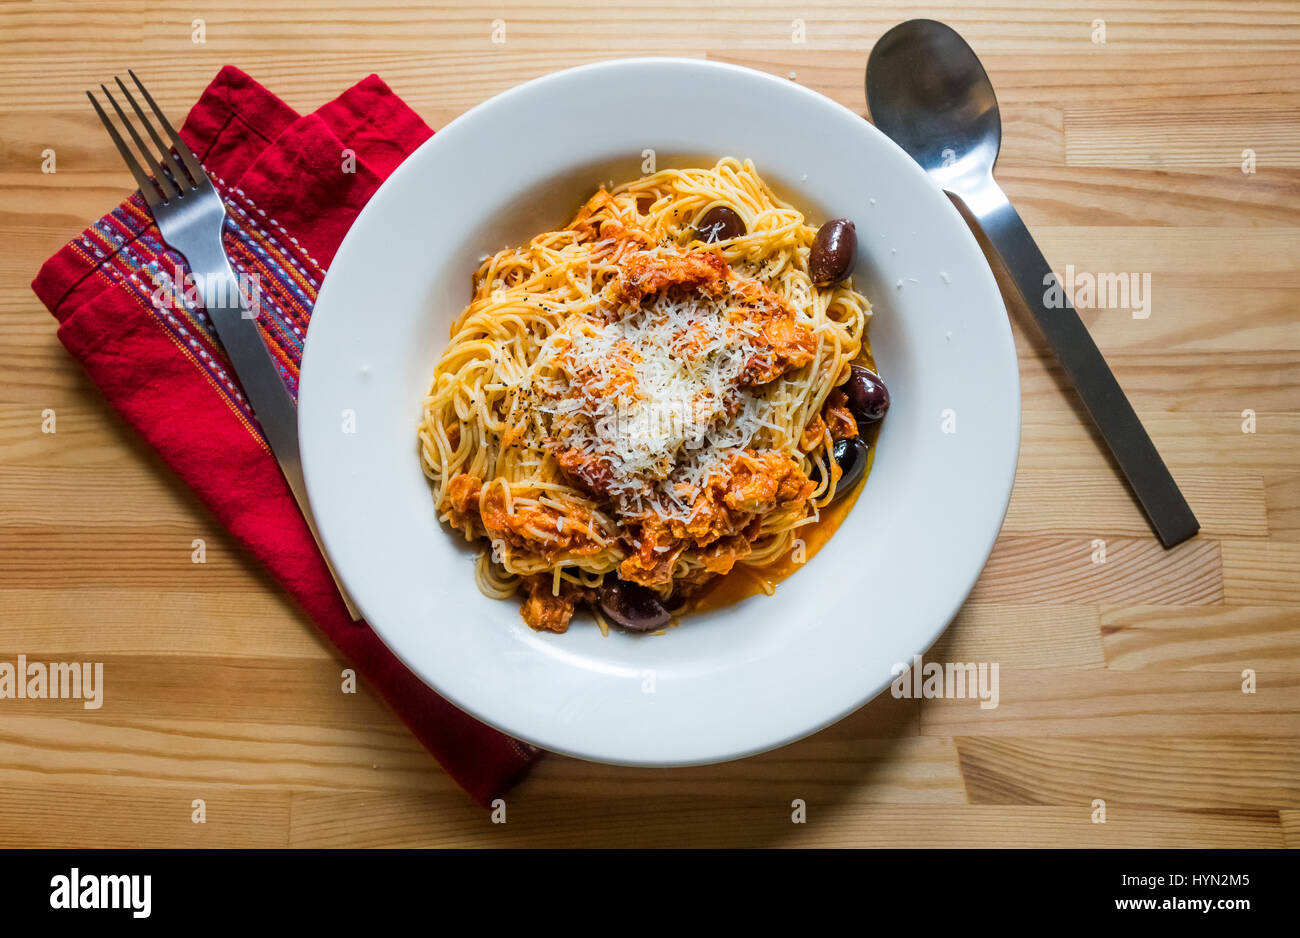 Angel hair pasta with tuna, tomatoes and olives - Stock Image